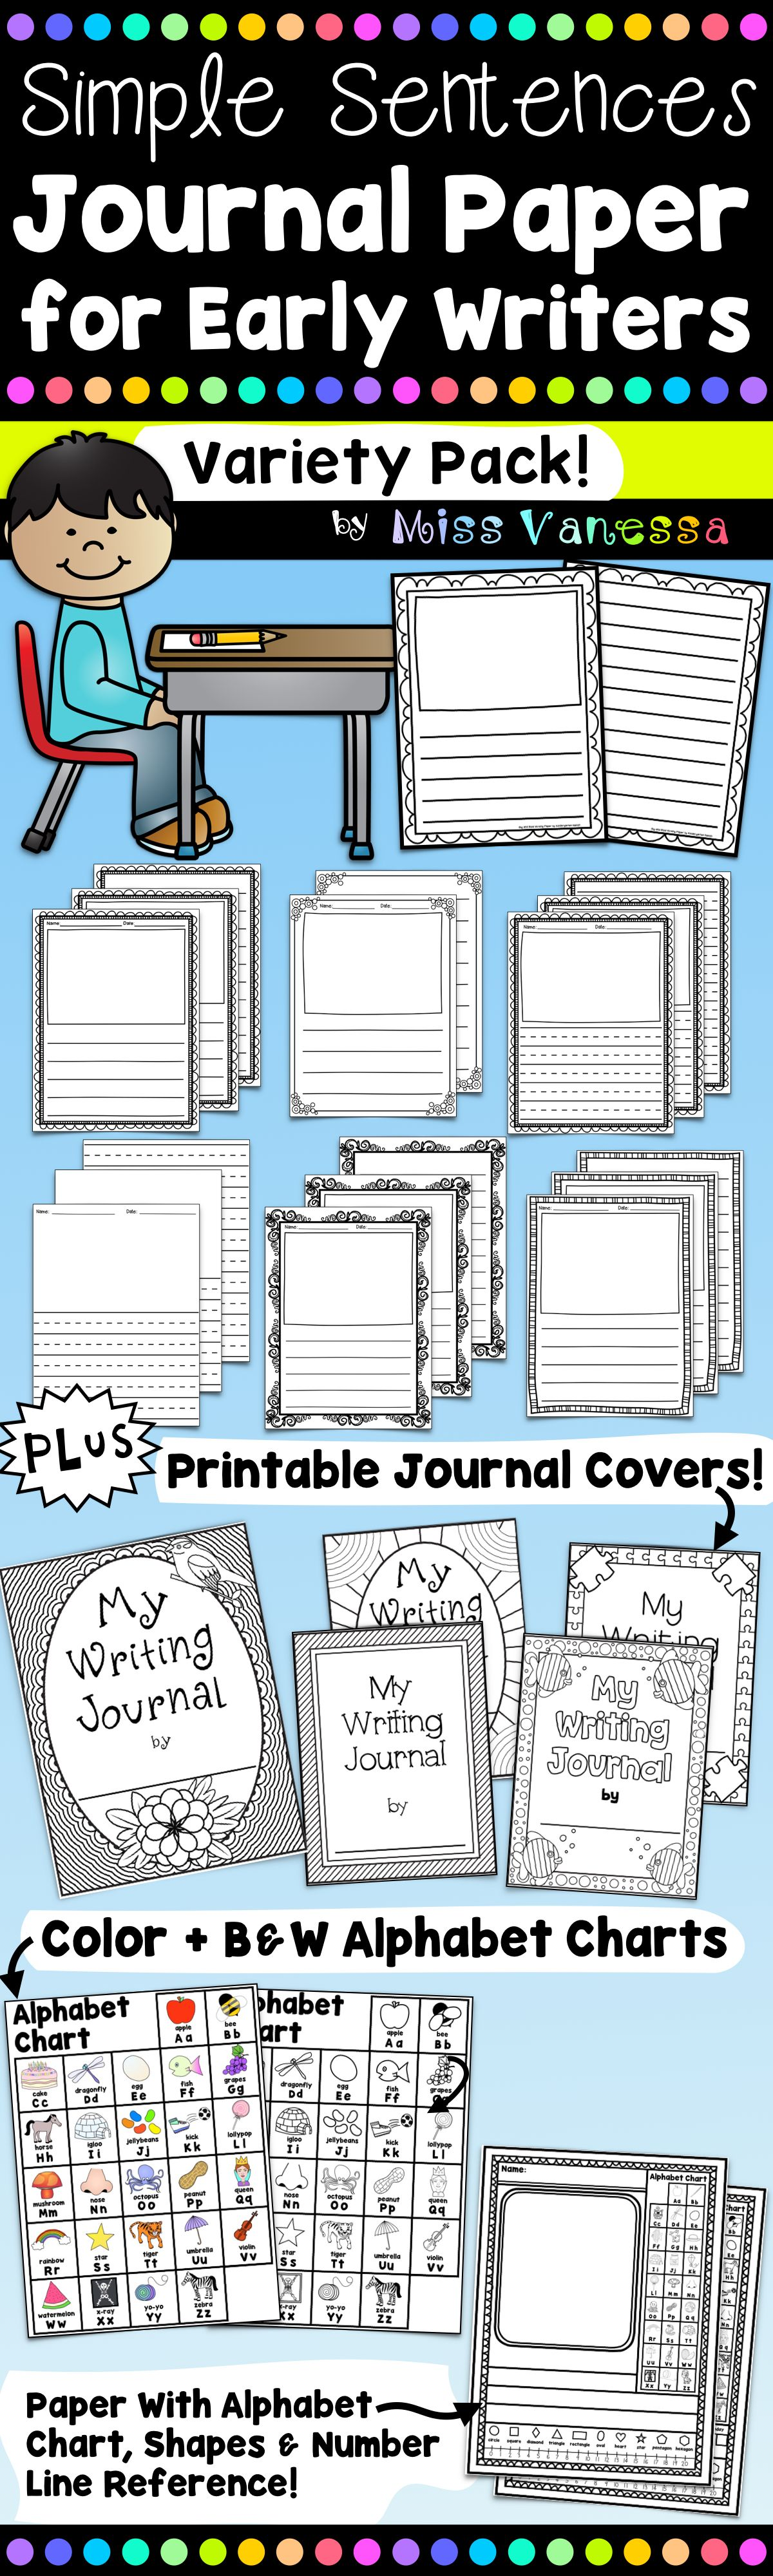 Journal Paper, Journal Covers And Alphabet Charts | Alphabet charts ...